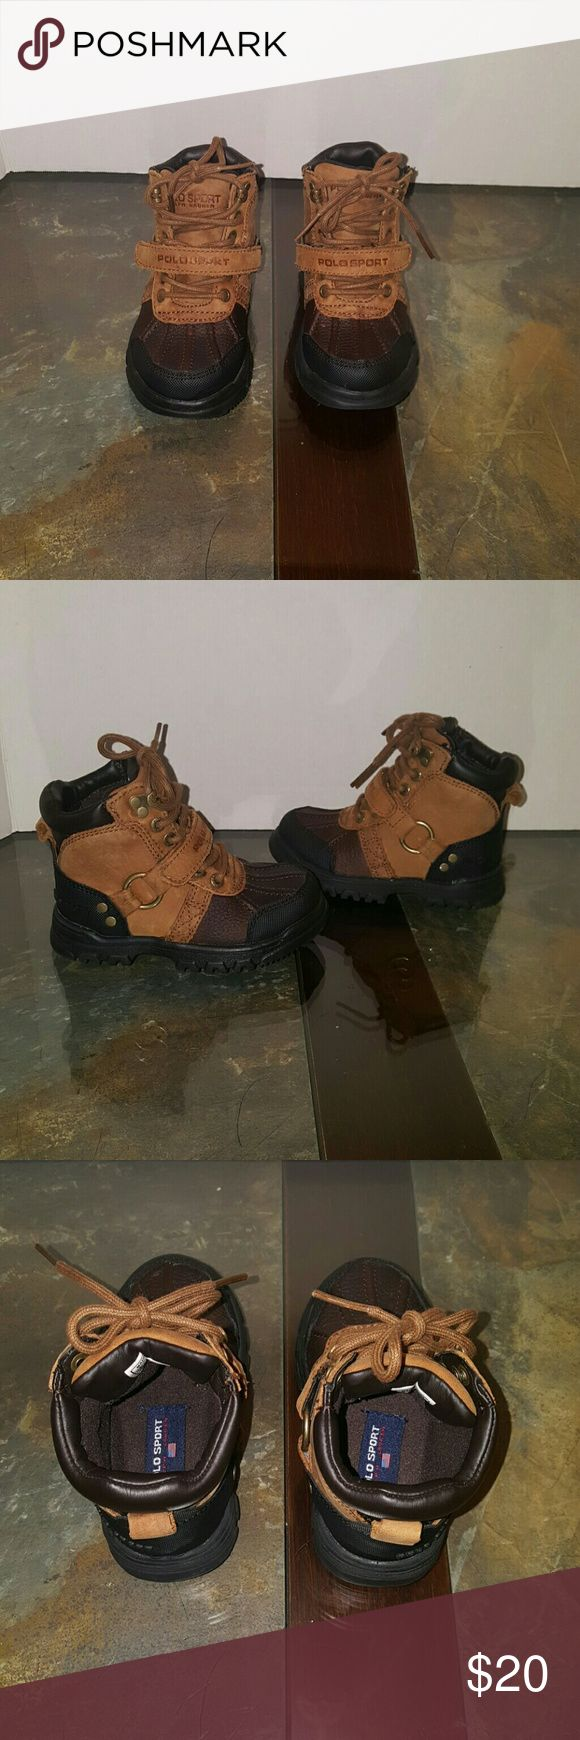 Polo Ralph Lauren boots New Leather boots,rubber sole and buckle lace up closer,price firm Polo by Ralph Lauren Shoes Boots